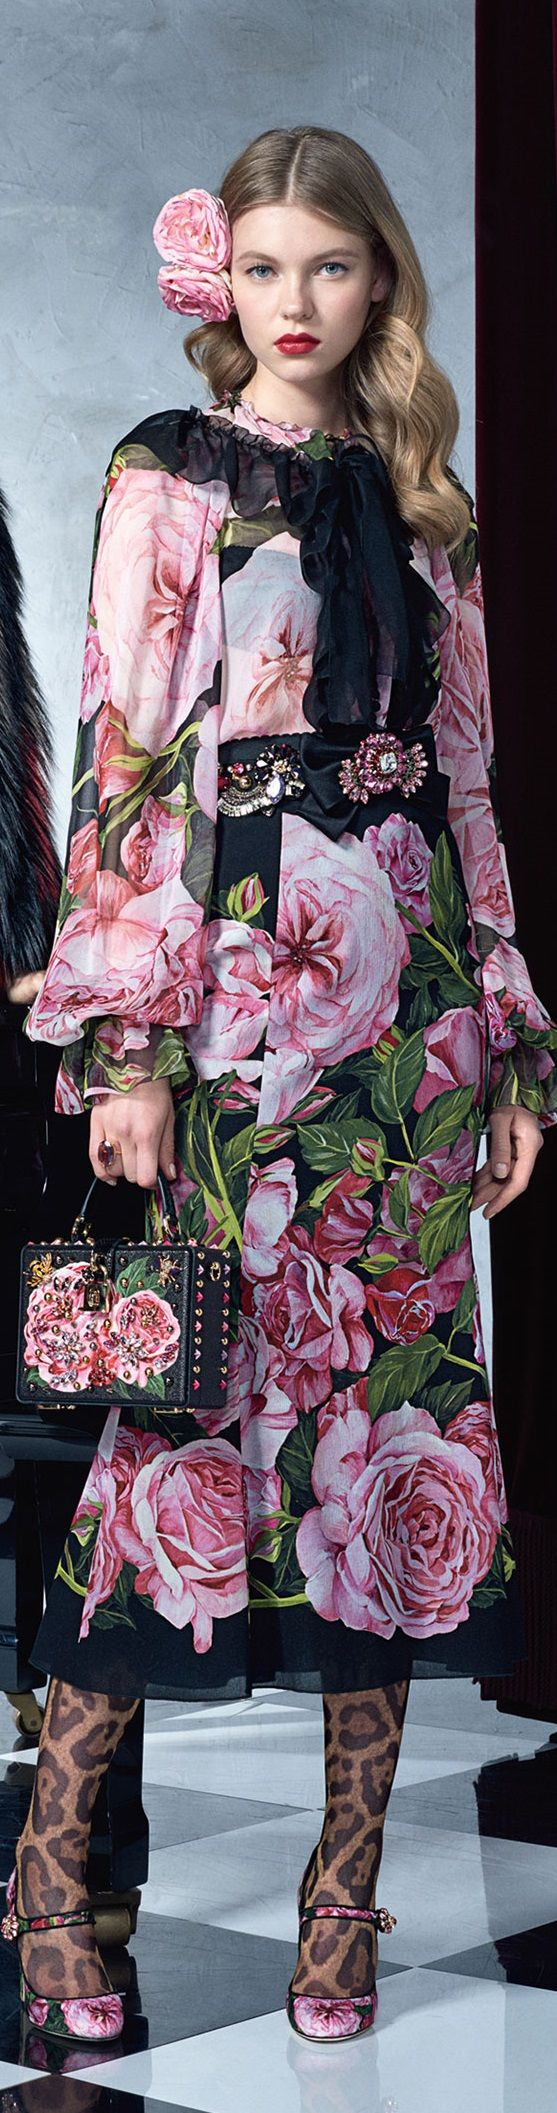 137 Best DOLCE & GABANNA Images On Pinterest